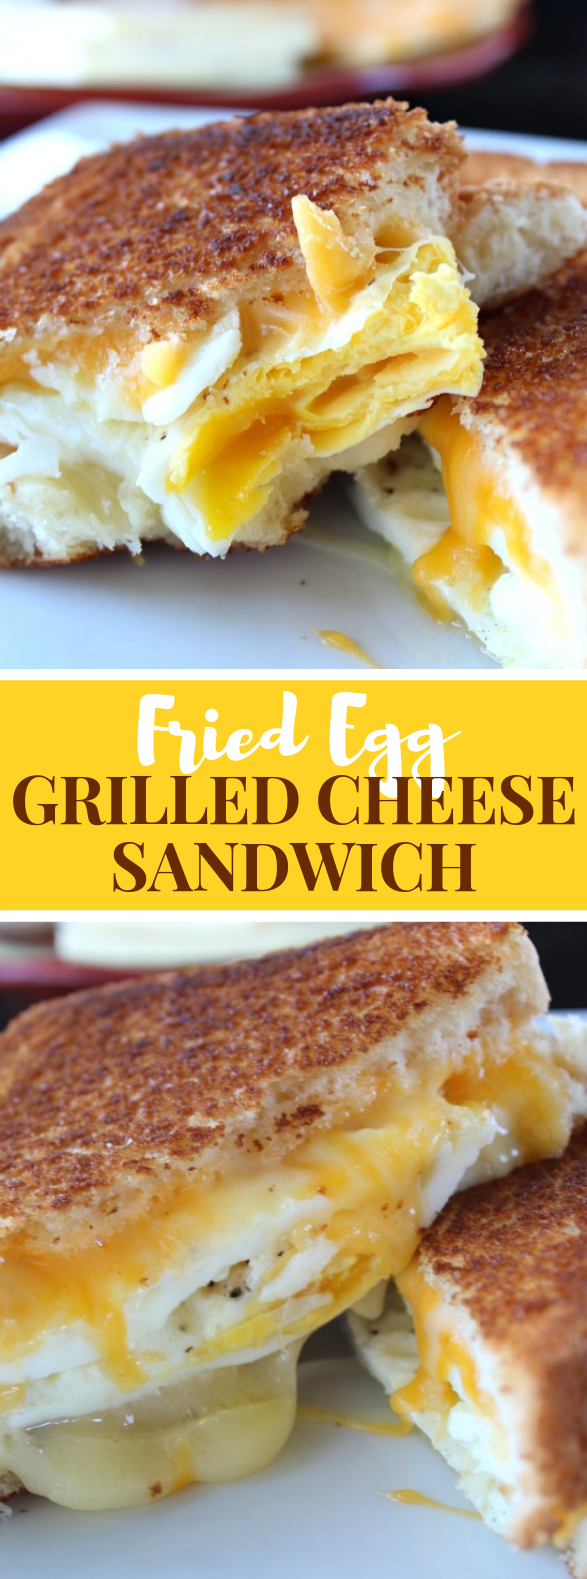 FRIED EGG GRILLED CHEESE SANDWICH #lunch #breakfast